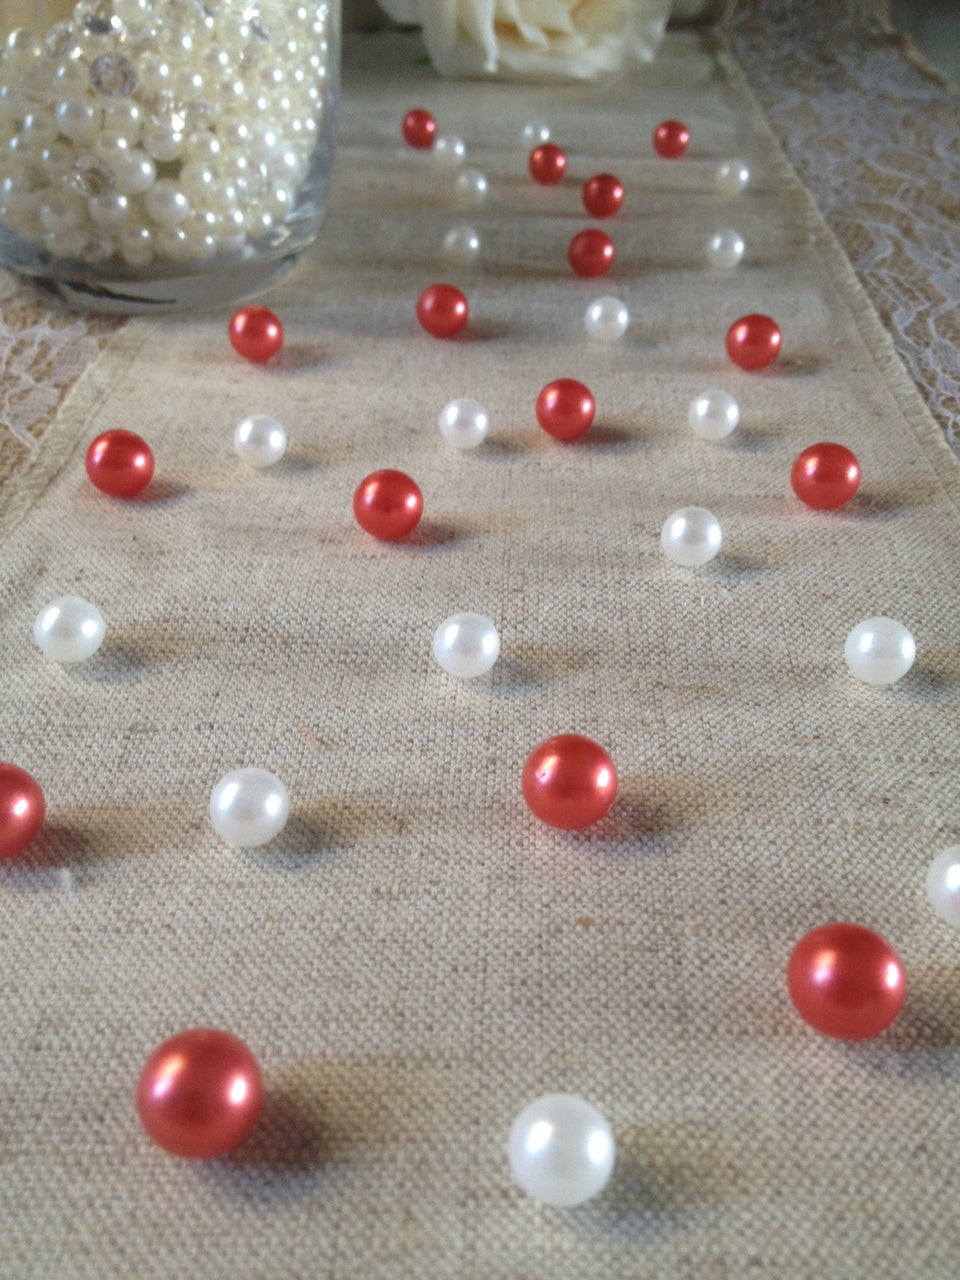 Vintage Table Pearl Scatters Red And White Pearls For Wedding, Parties, Special Events Decor Table Confetti